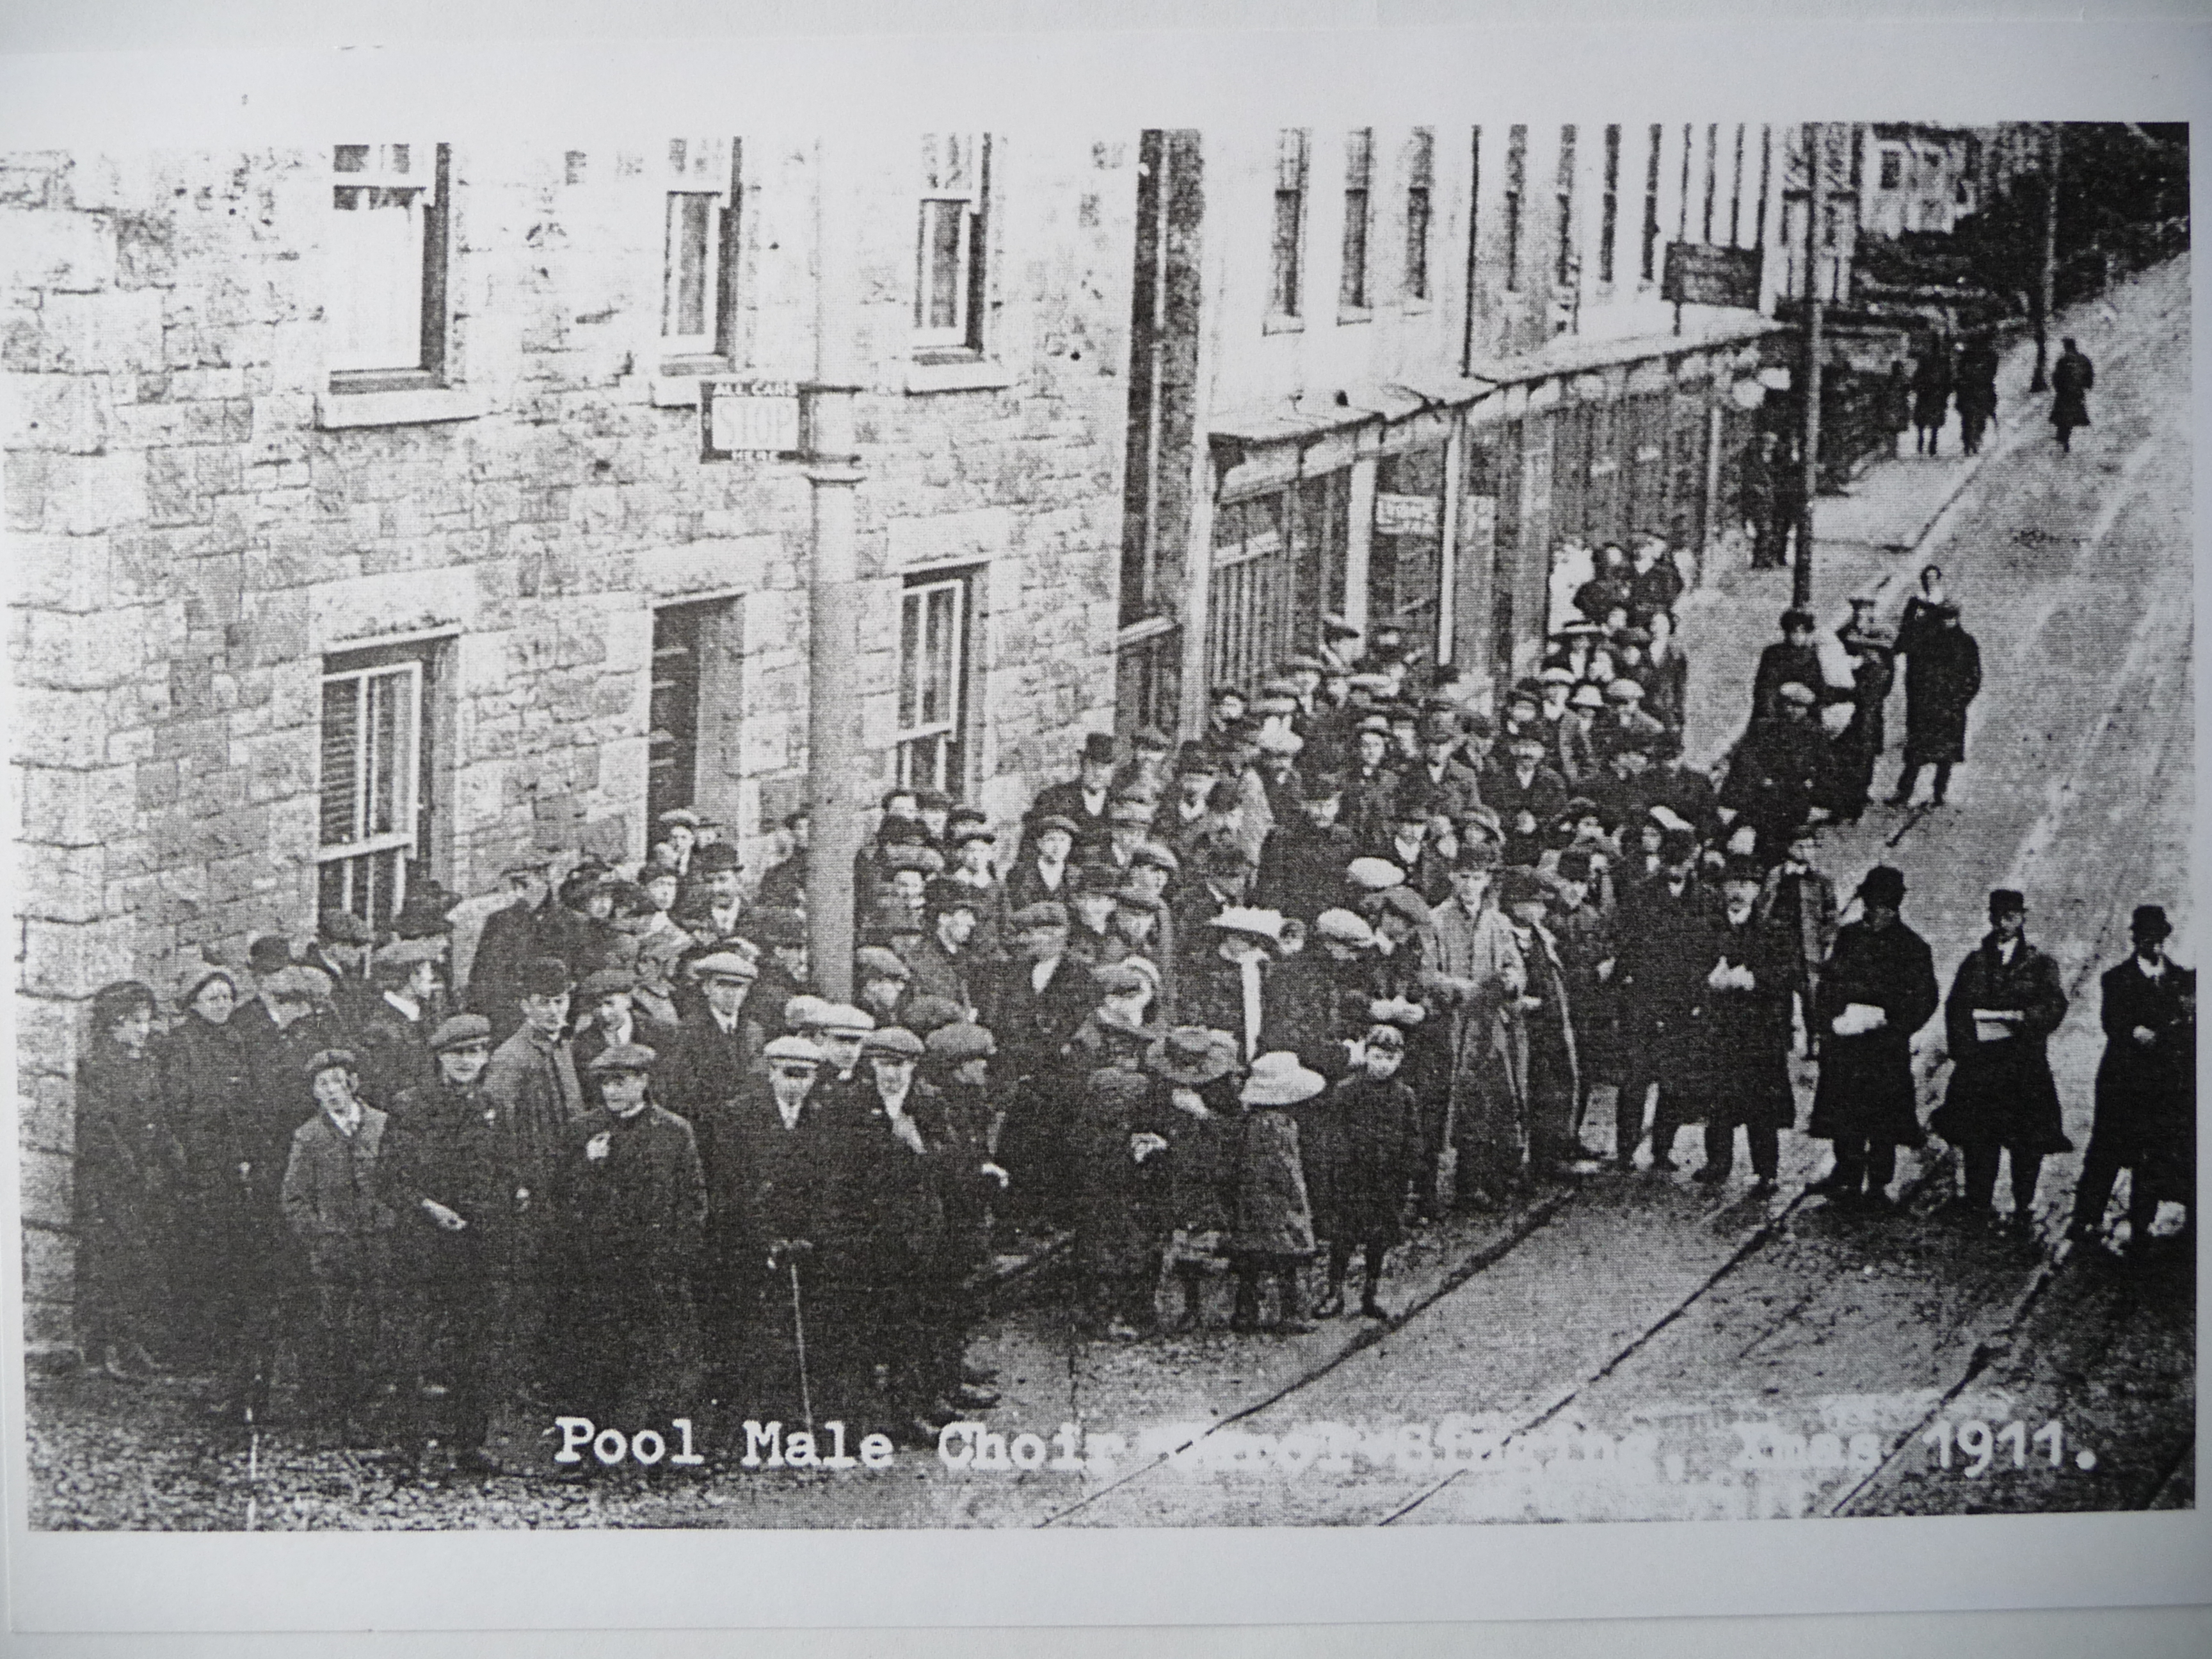 pool male choir xmas 1911